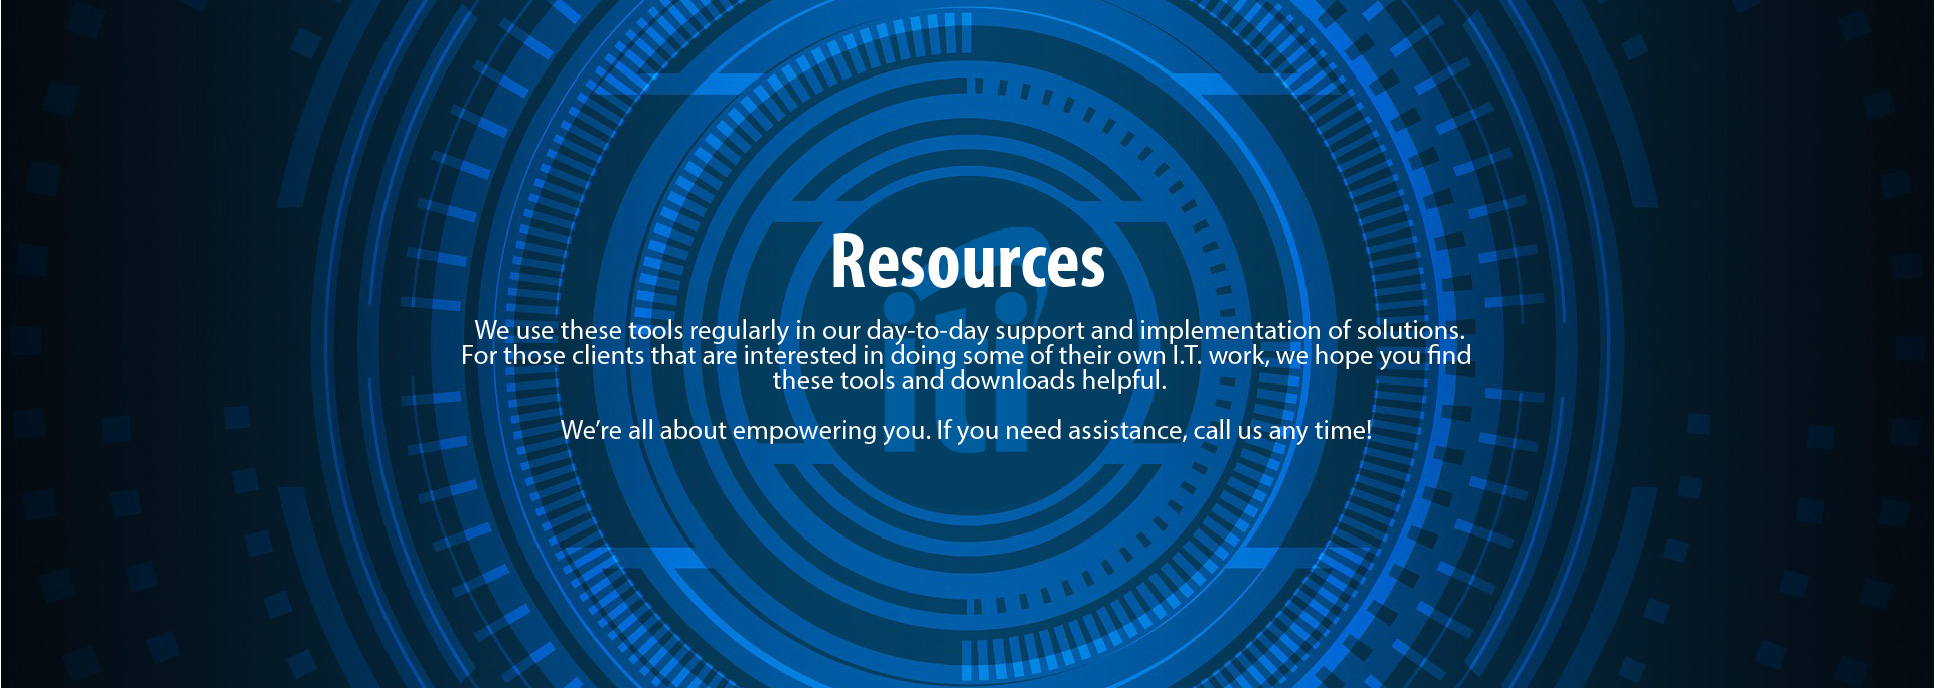 resources, it-resources, resources for computer it, iti-muskegon-michigan